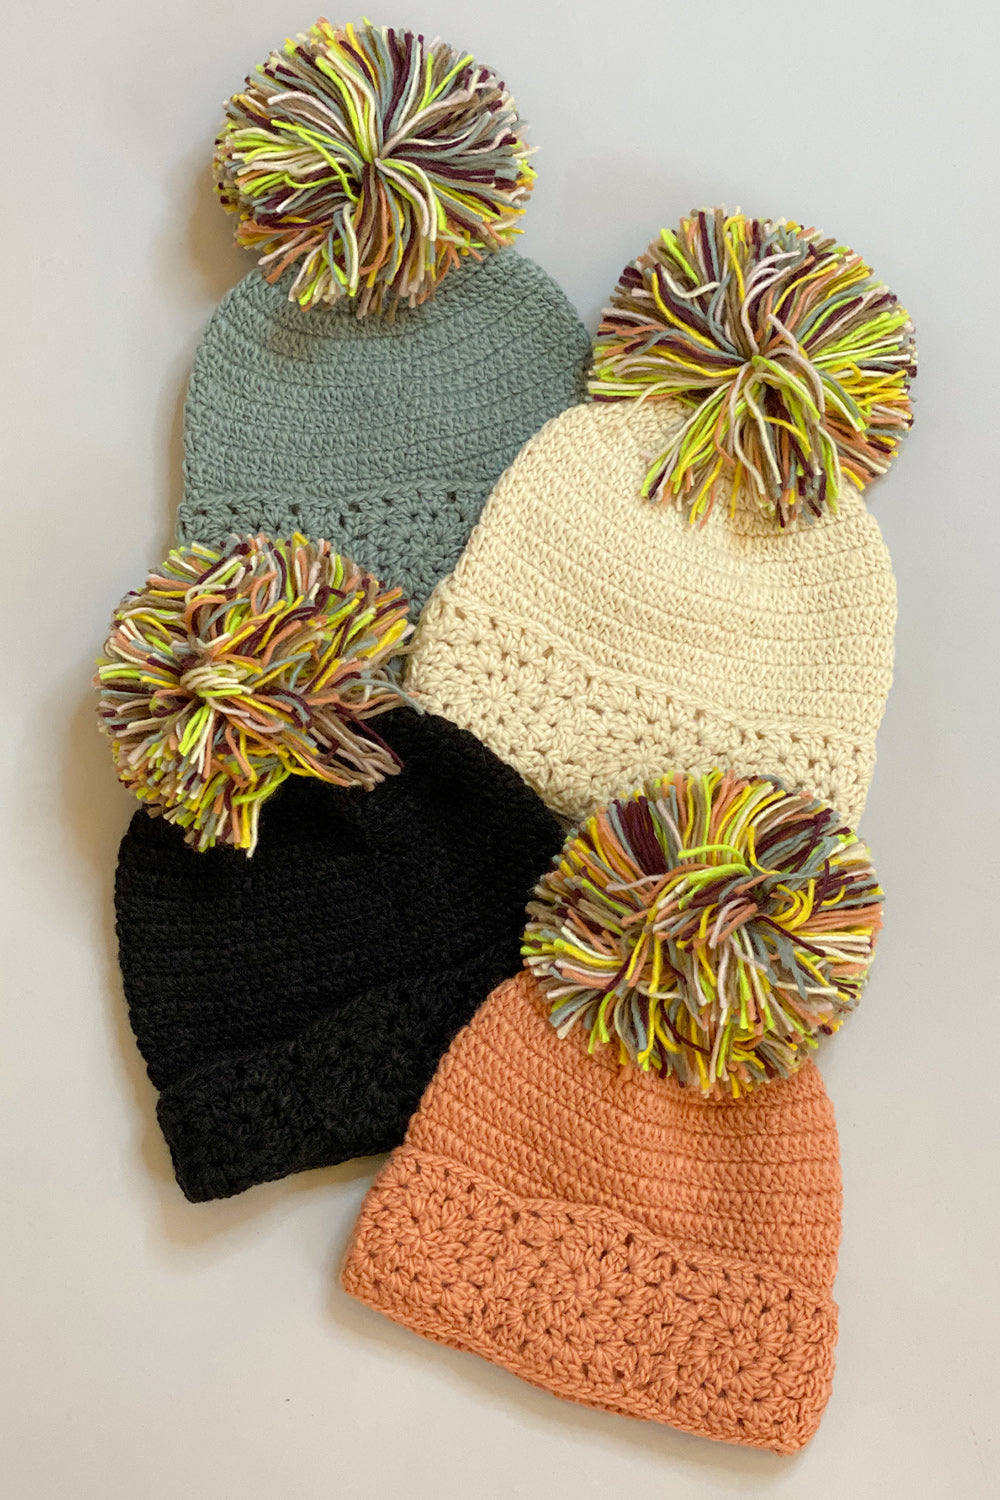 Knit Multicolored Pom Pom Hat